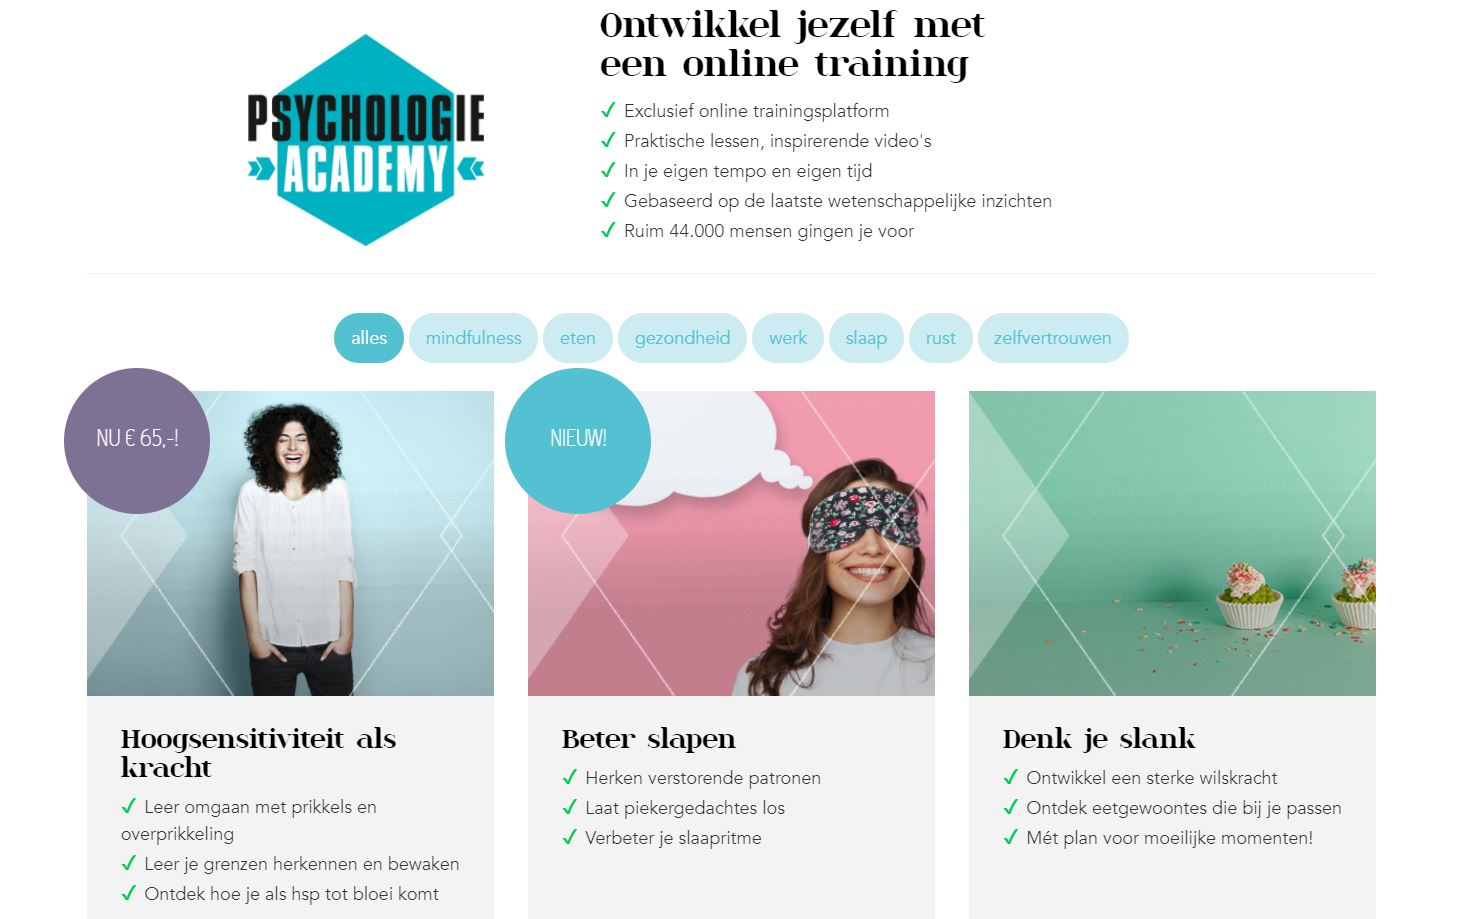 Online trainingsplatform Psychologie Magazine